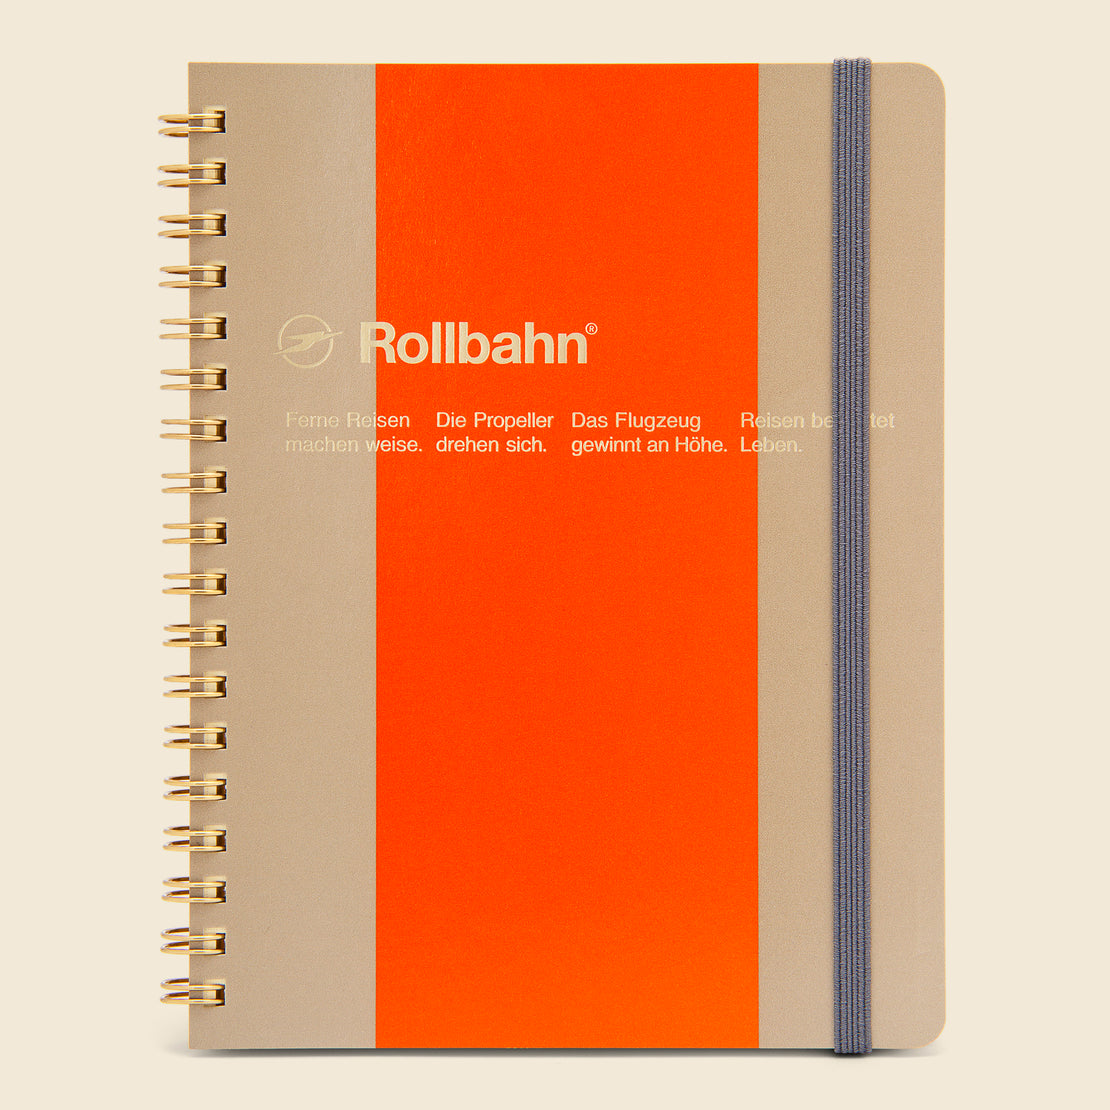 Paper Goods Rollbahn Spiral Notebook - Beige/Orange